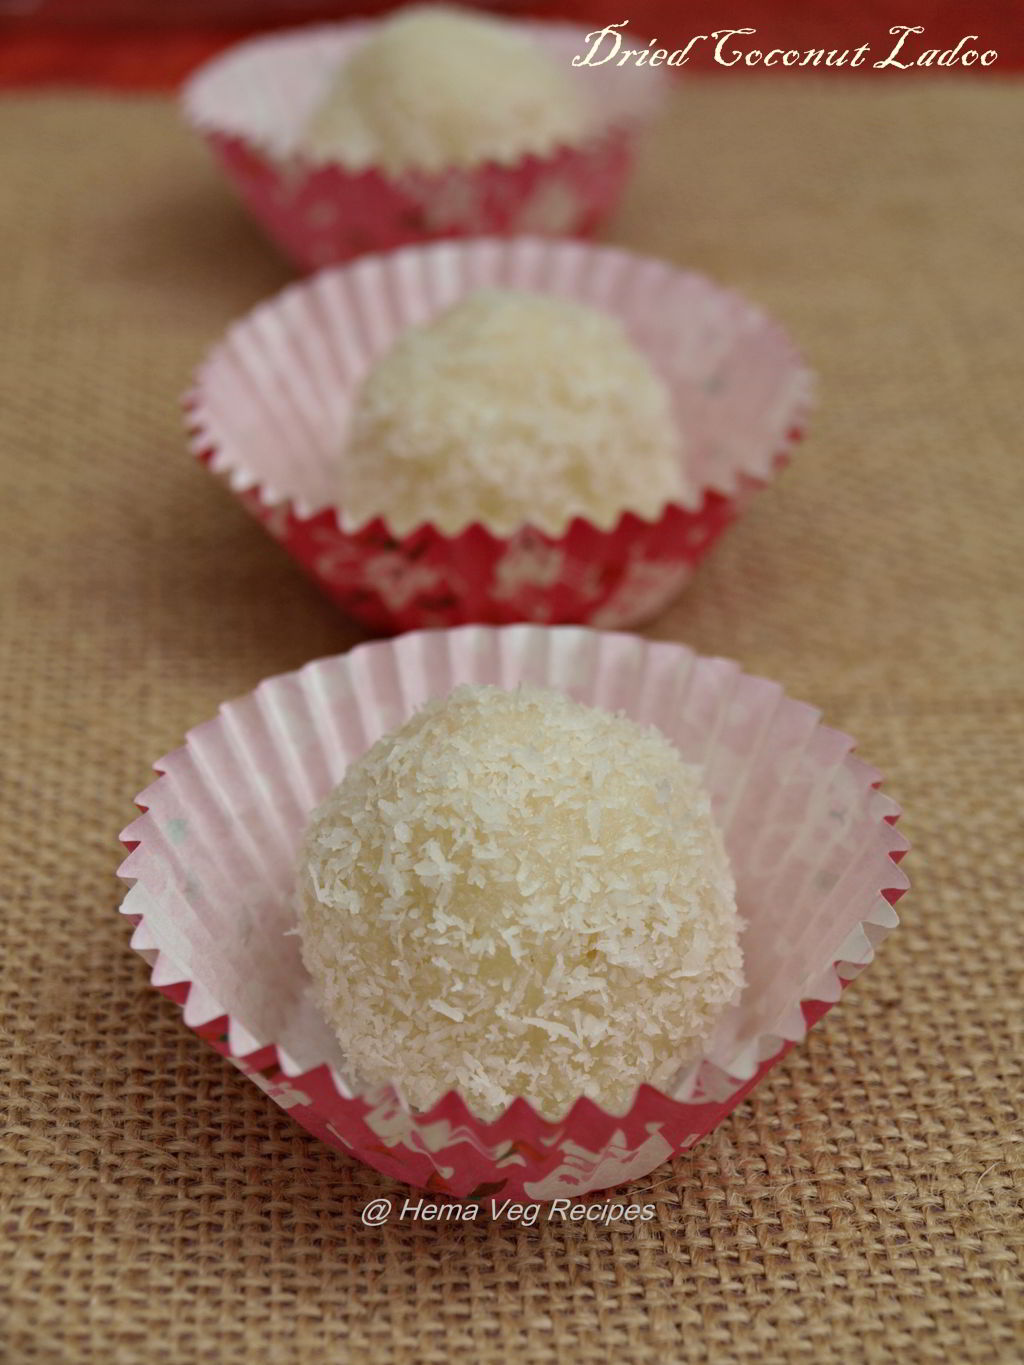 Dried Coconut Ladoo